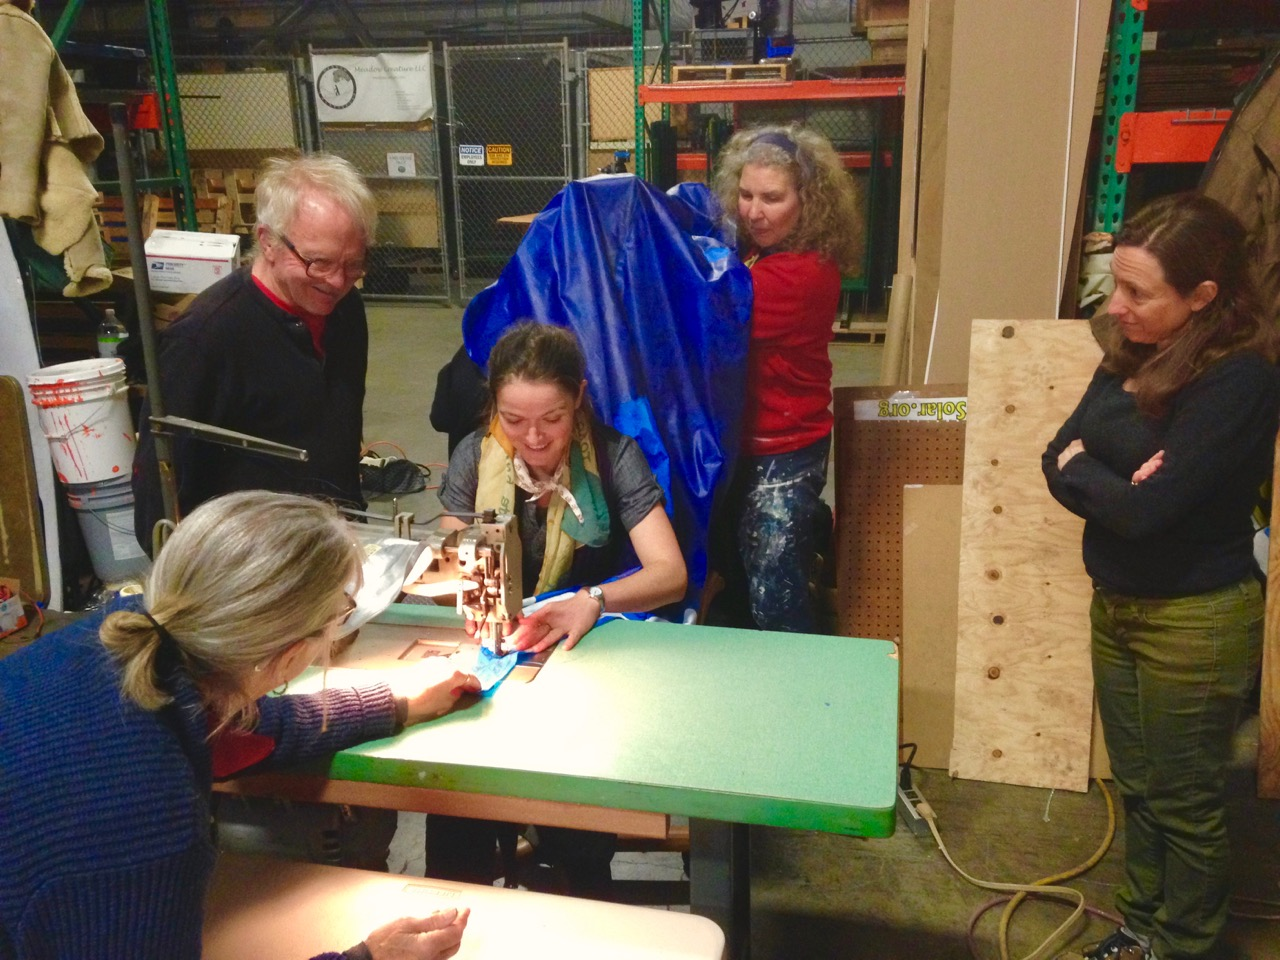 Inflatable_Puppet_Building_Workshop_Art_Build_Warehouse_stitching_low_Quality_IMG_0957.jpg